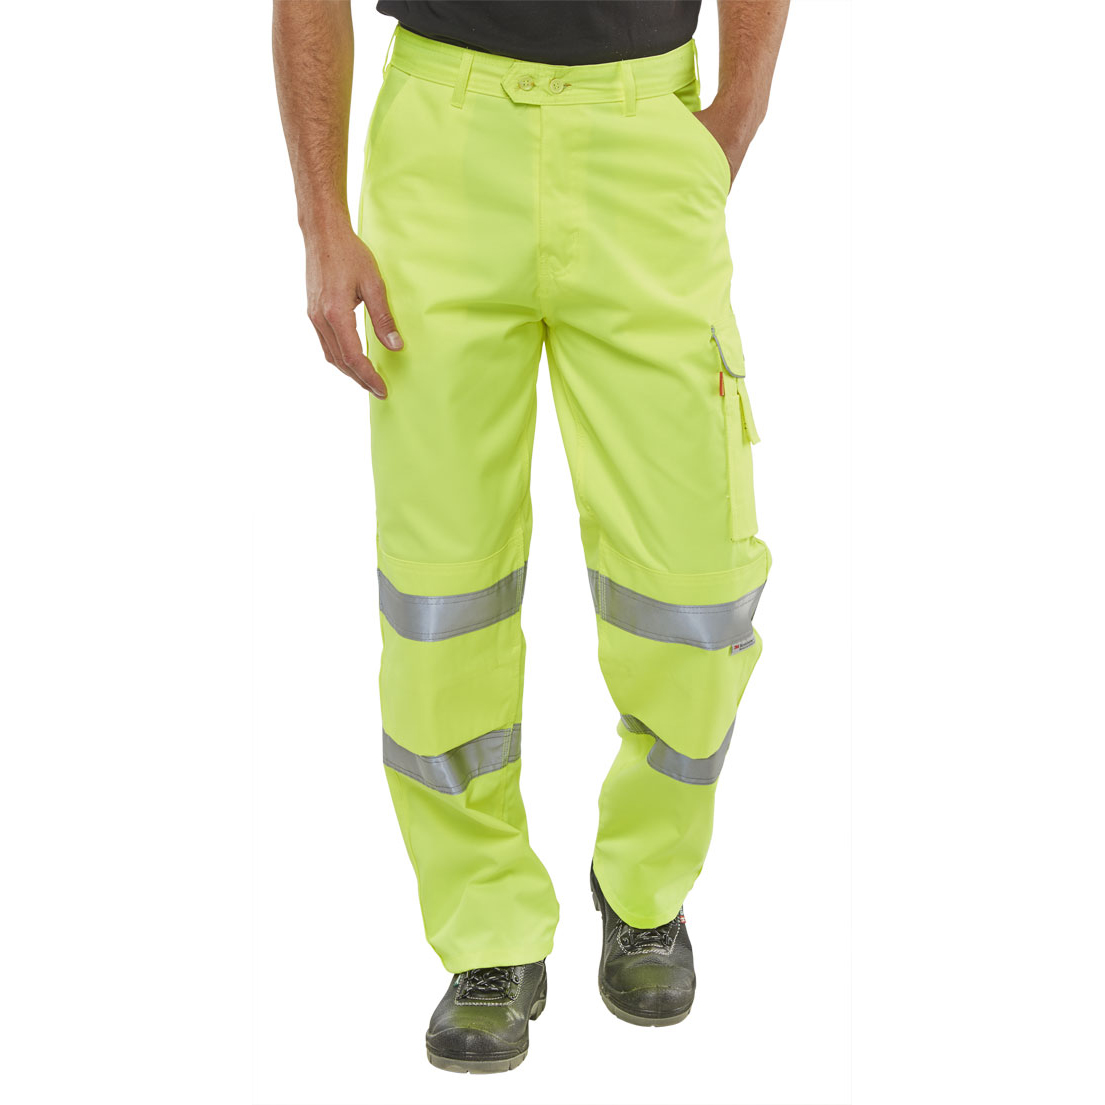 Ladies BSeen Trousers Polycotton Hi-Vis EN471 Saturn Yellow 32 Ref PCTENSY32 *Up to 3 Day Leadtime*